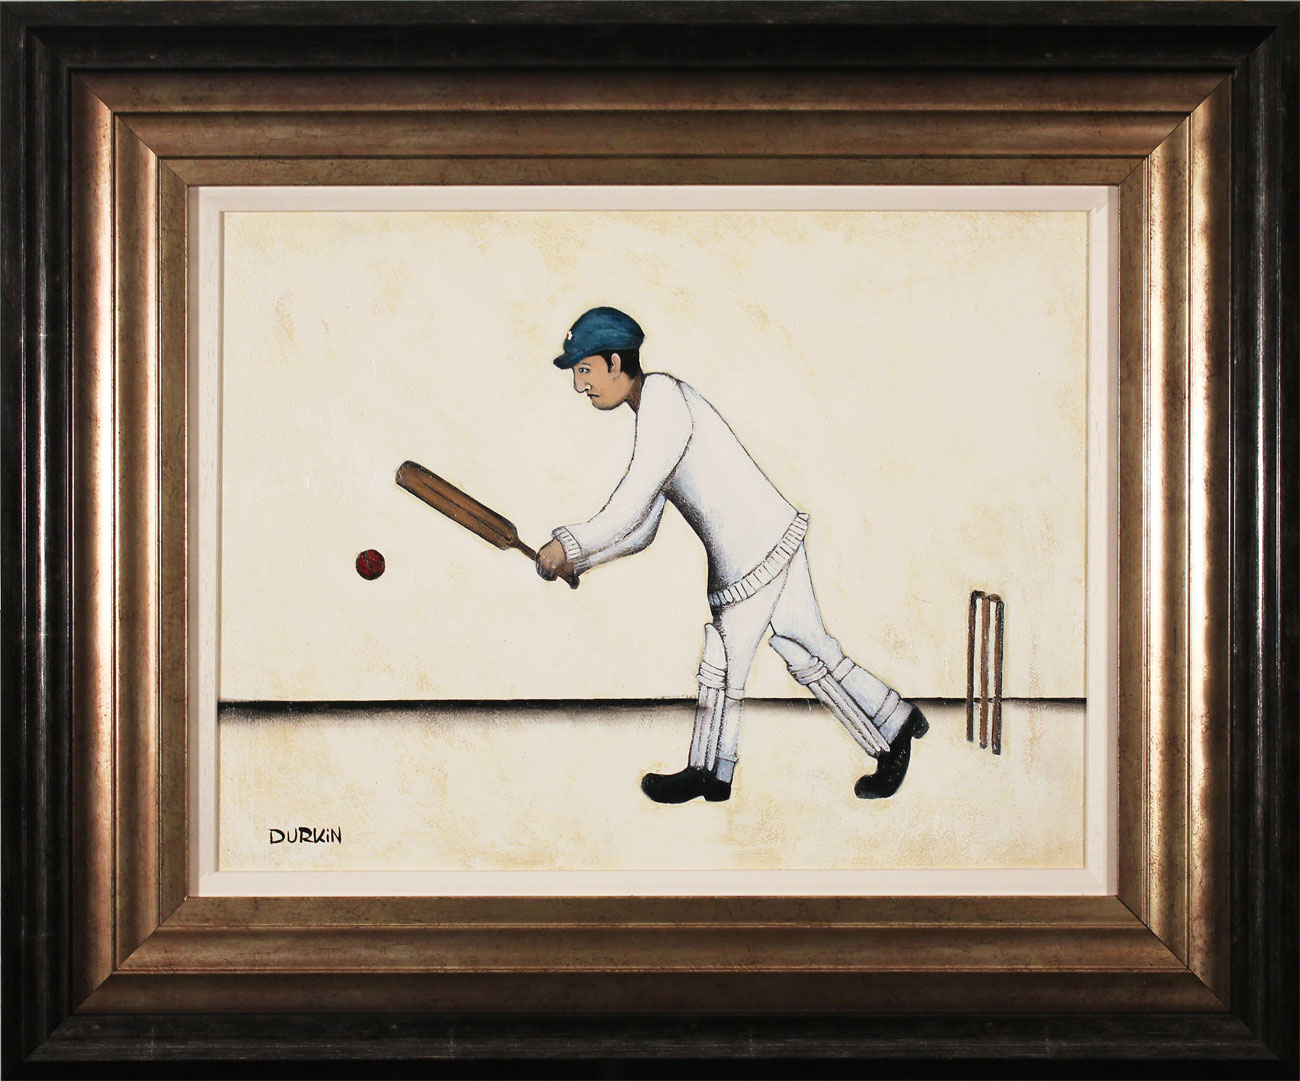 Sean Durkin, Original oil painting on panel, The Cricketer, click to enlarge